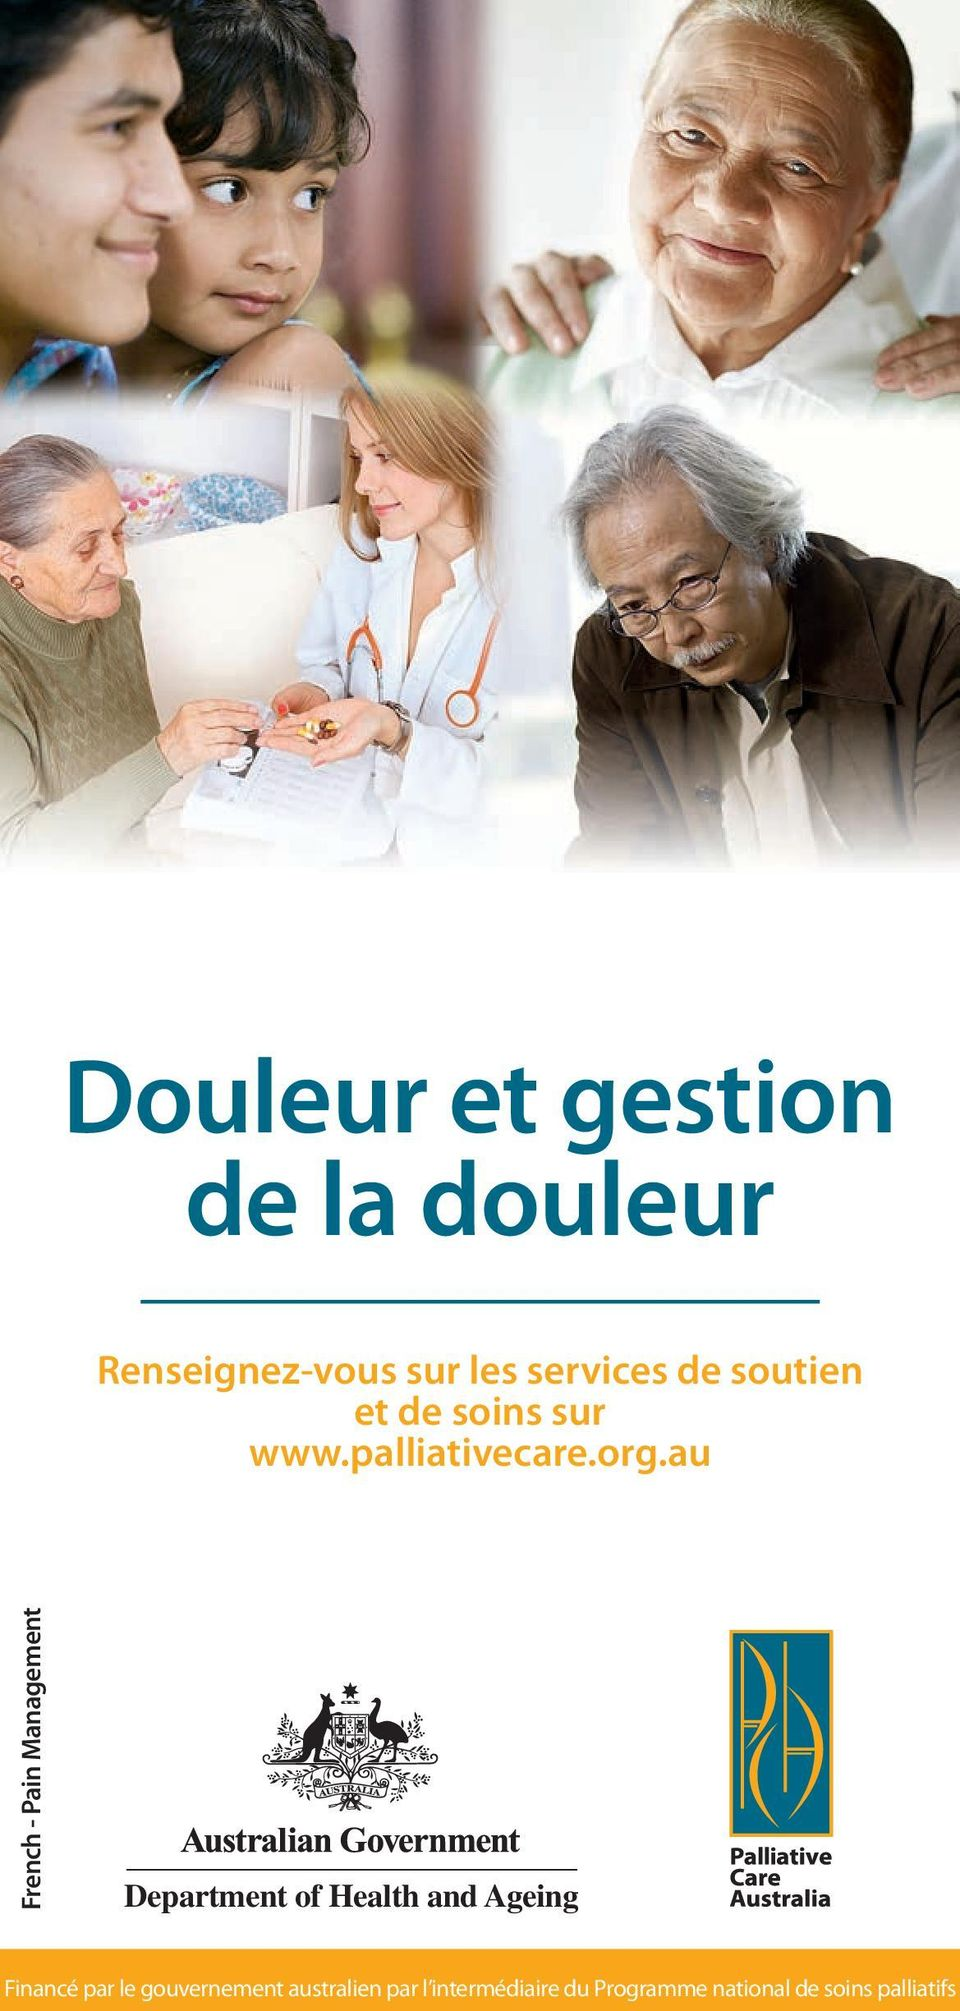 au French - Pain Management Department of Health and Ageing Financé